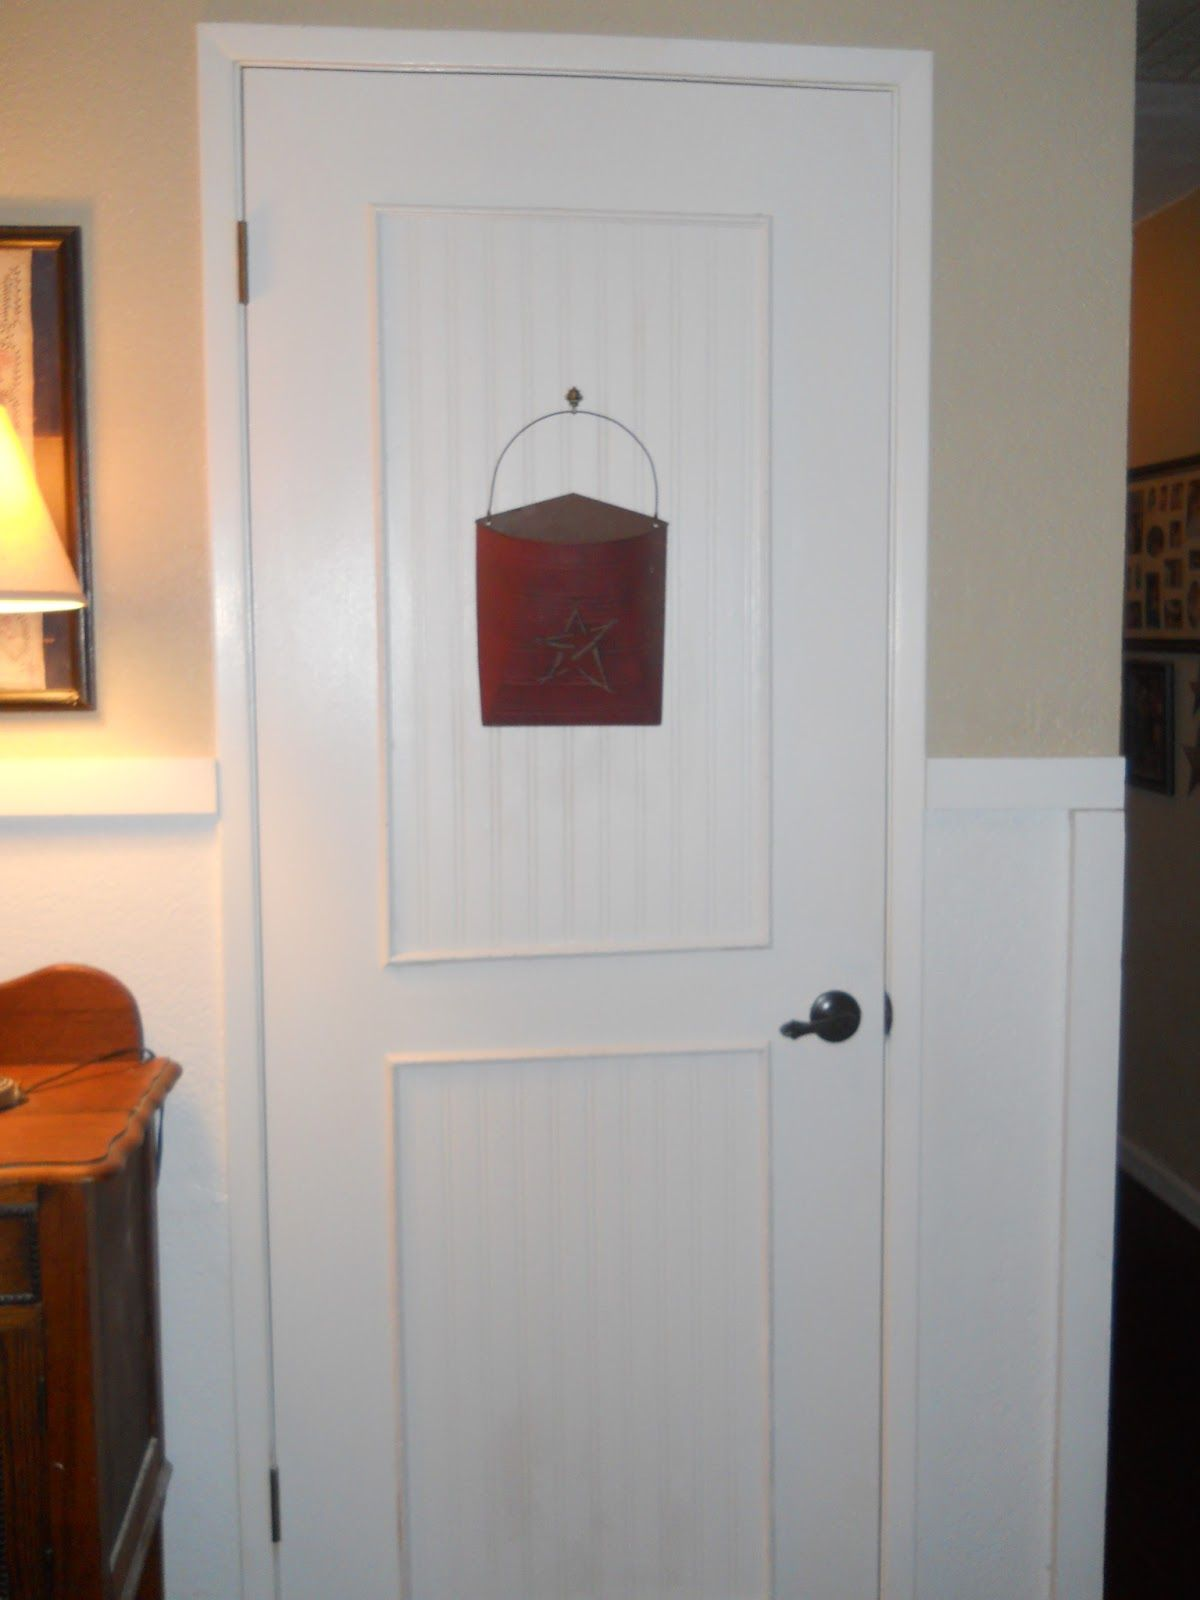 beadboard wallpaper doors | beadboard wallpaper at Lowes and used it on my interior doors . & beadboard wallpaper doors | beadboard wallpaper at Lowes and used it ...